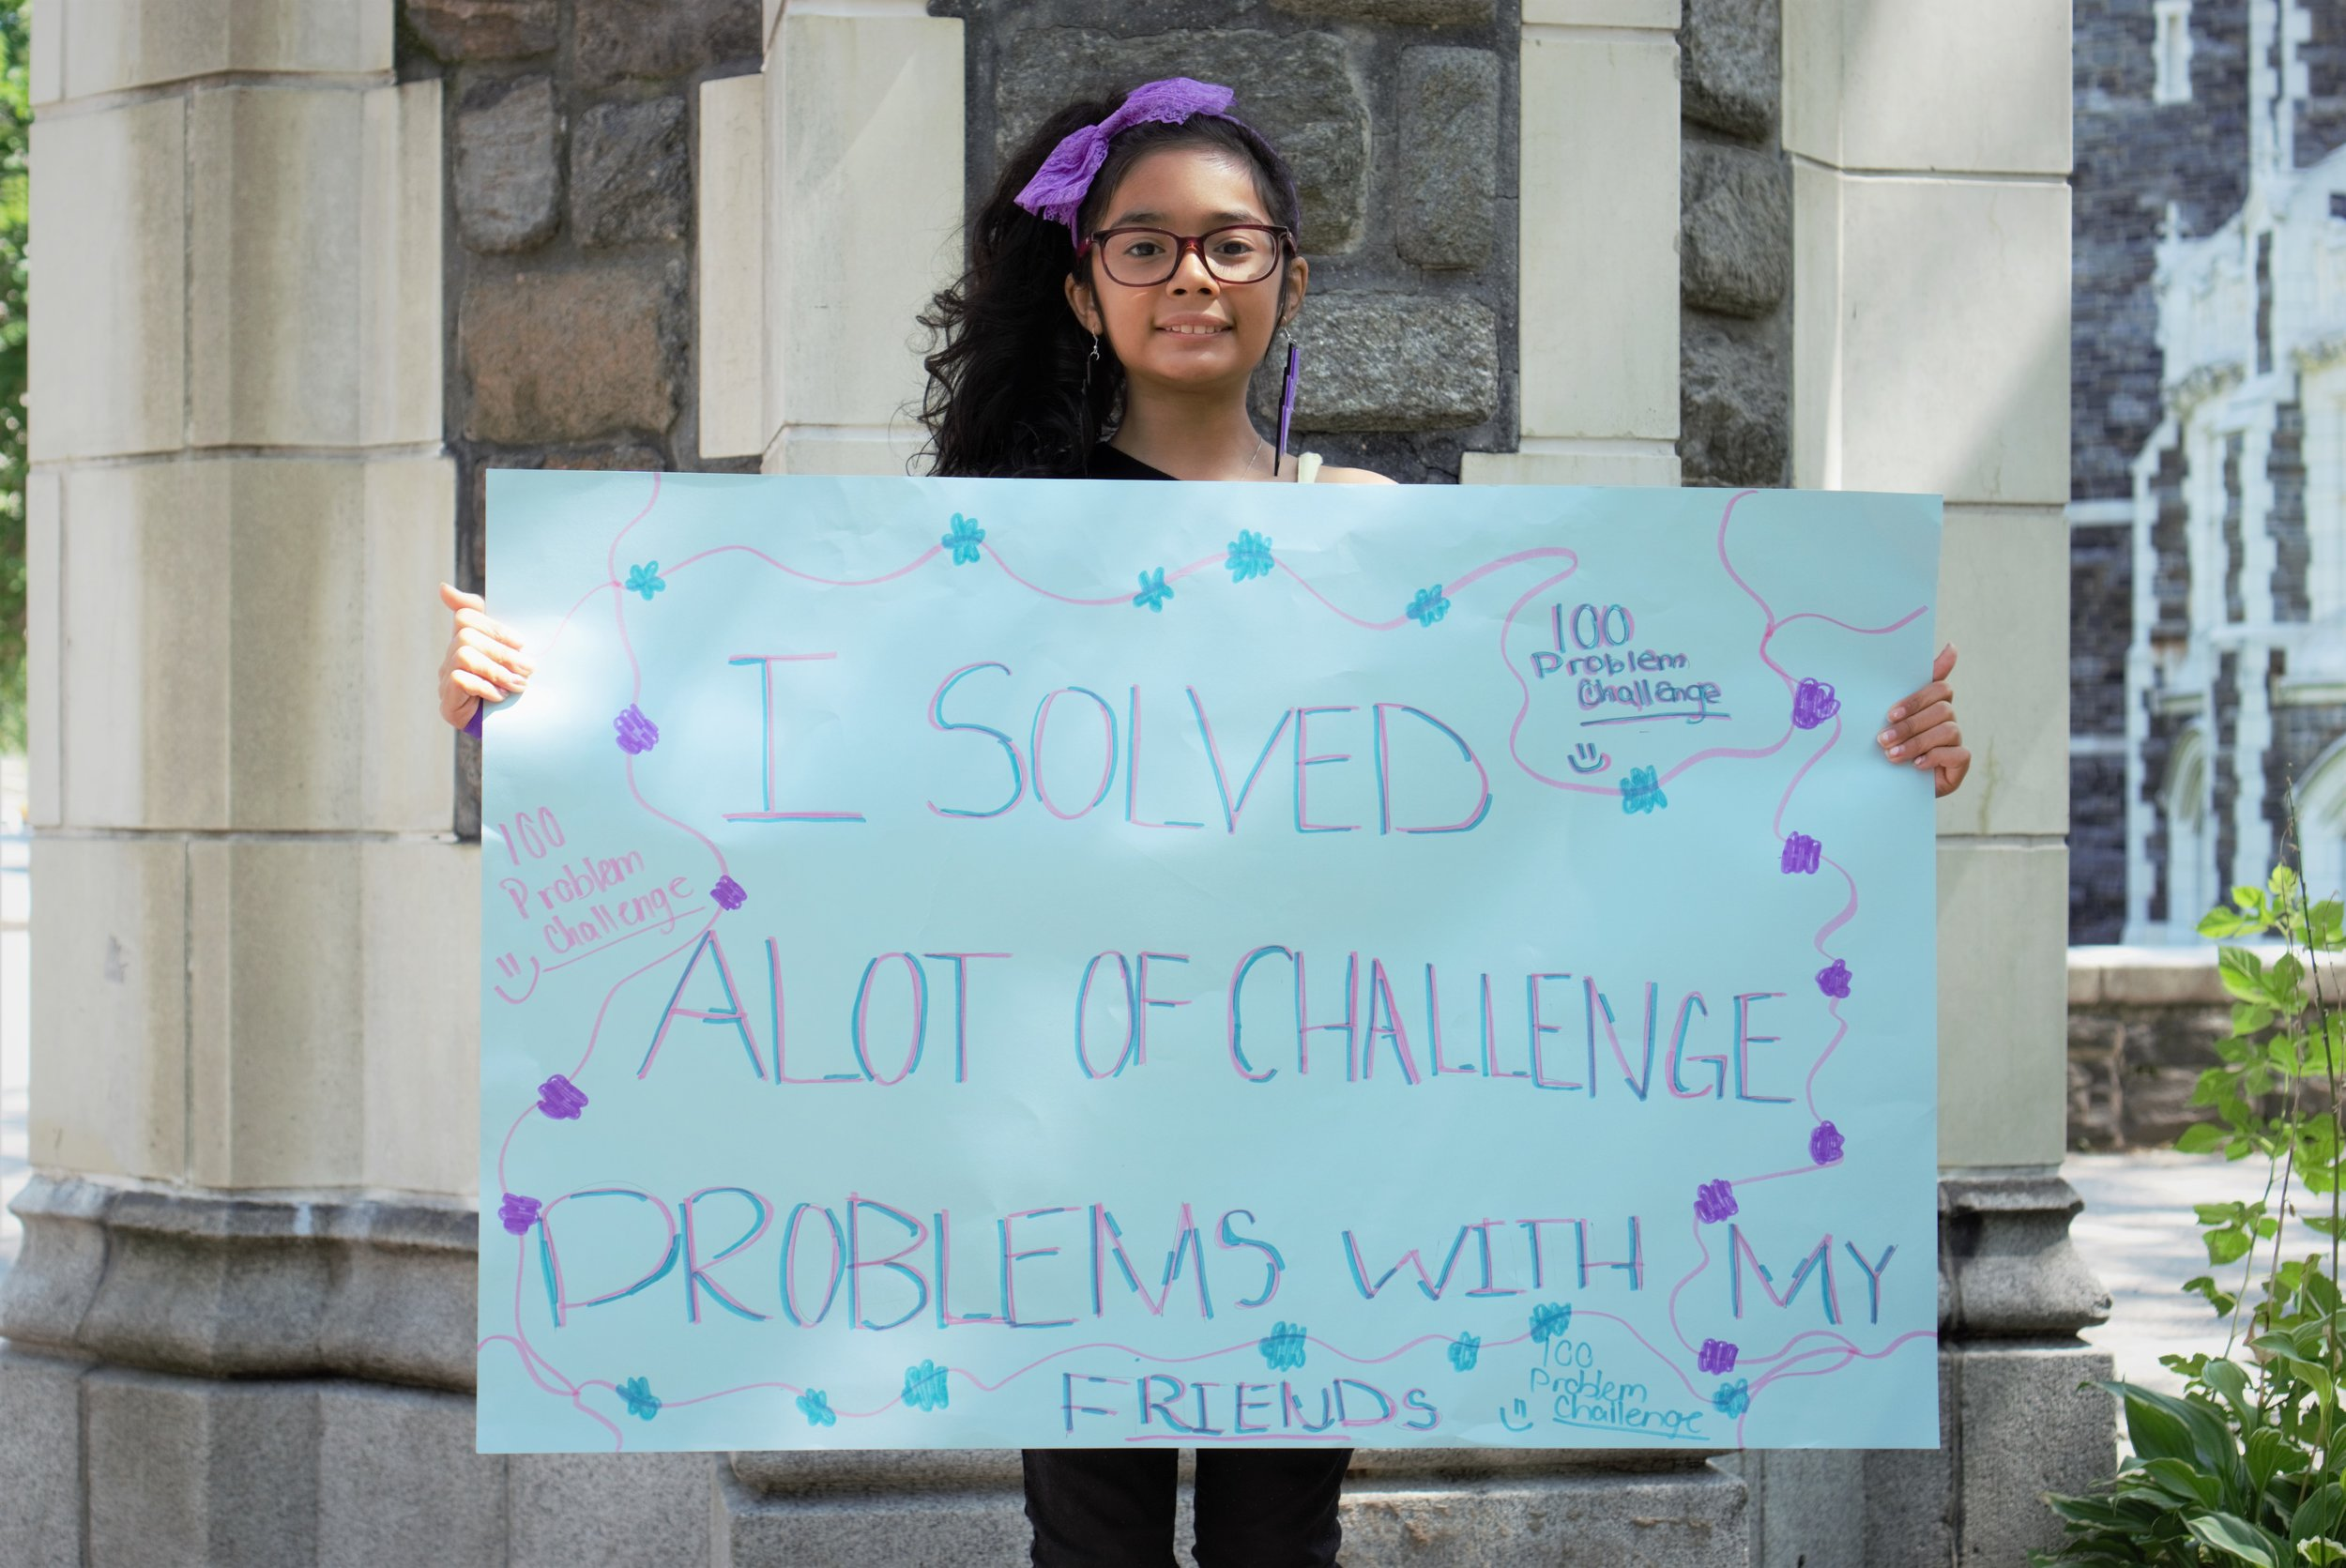 """I solved a lot of challenge problems with my friends."" —Ruth, BEAM Discovery"